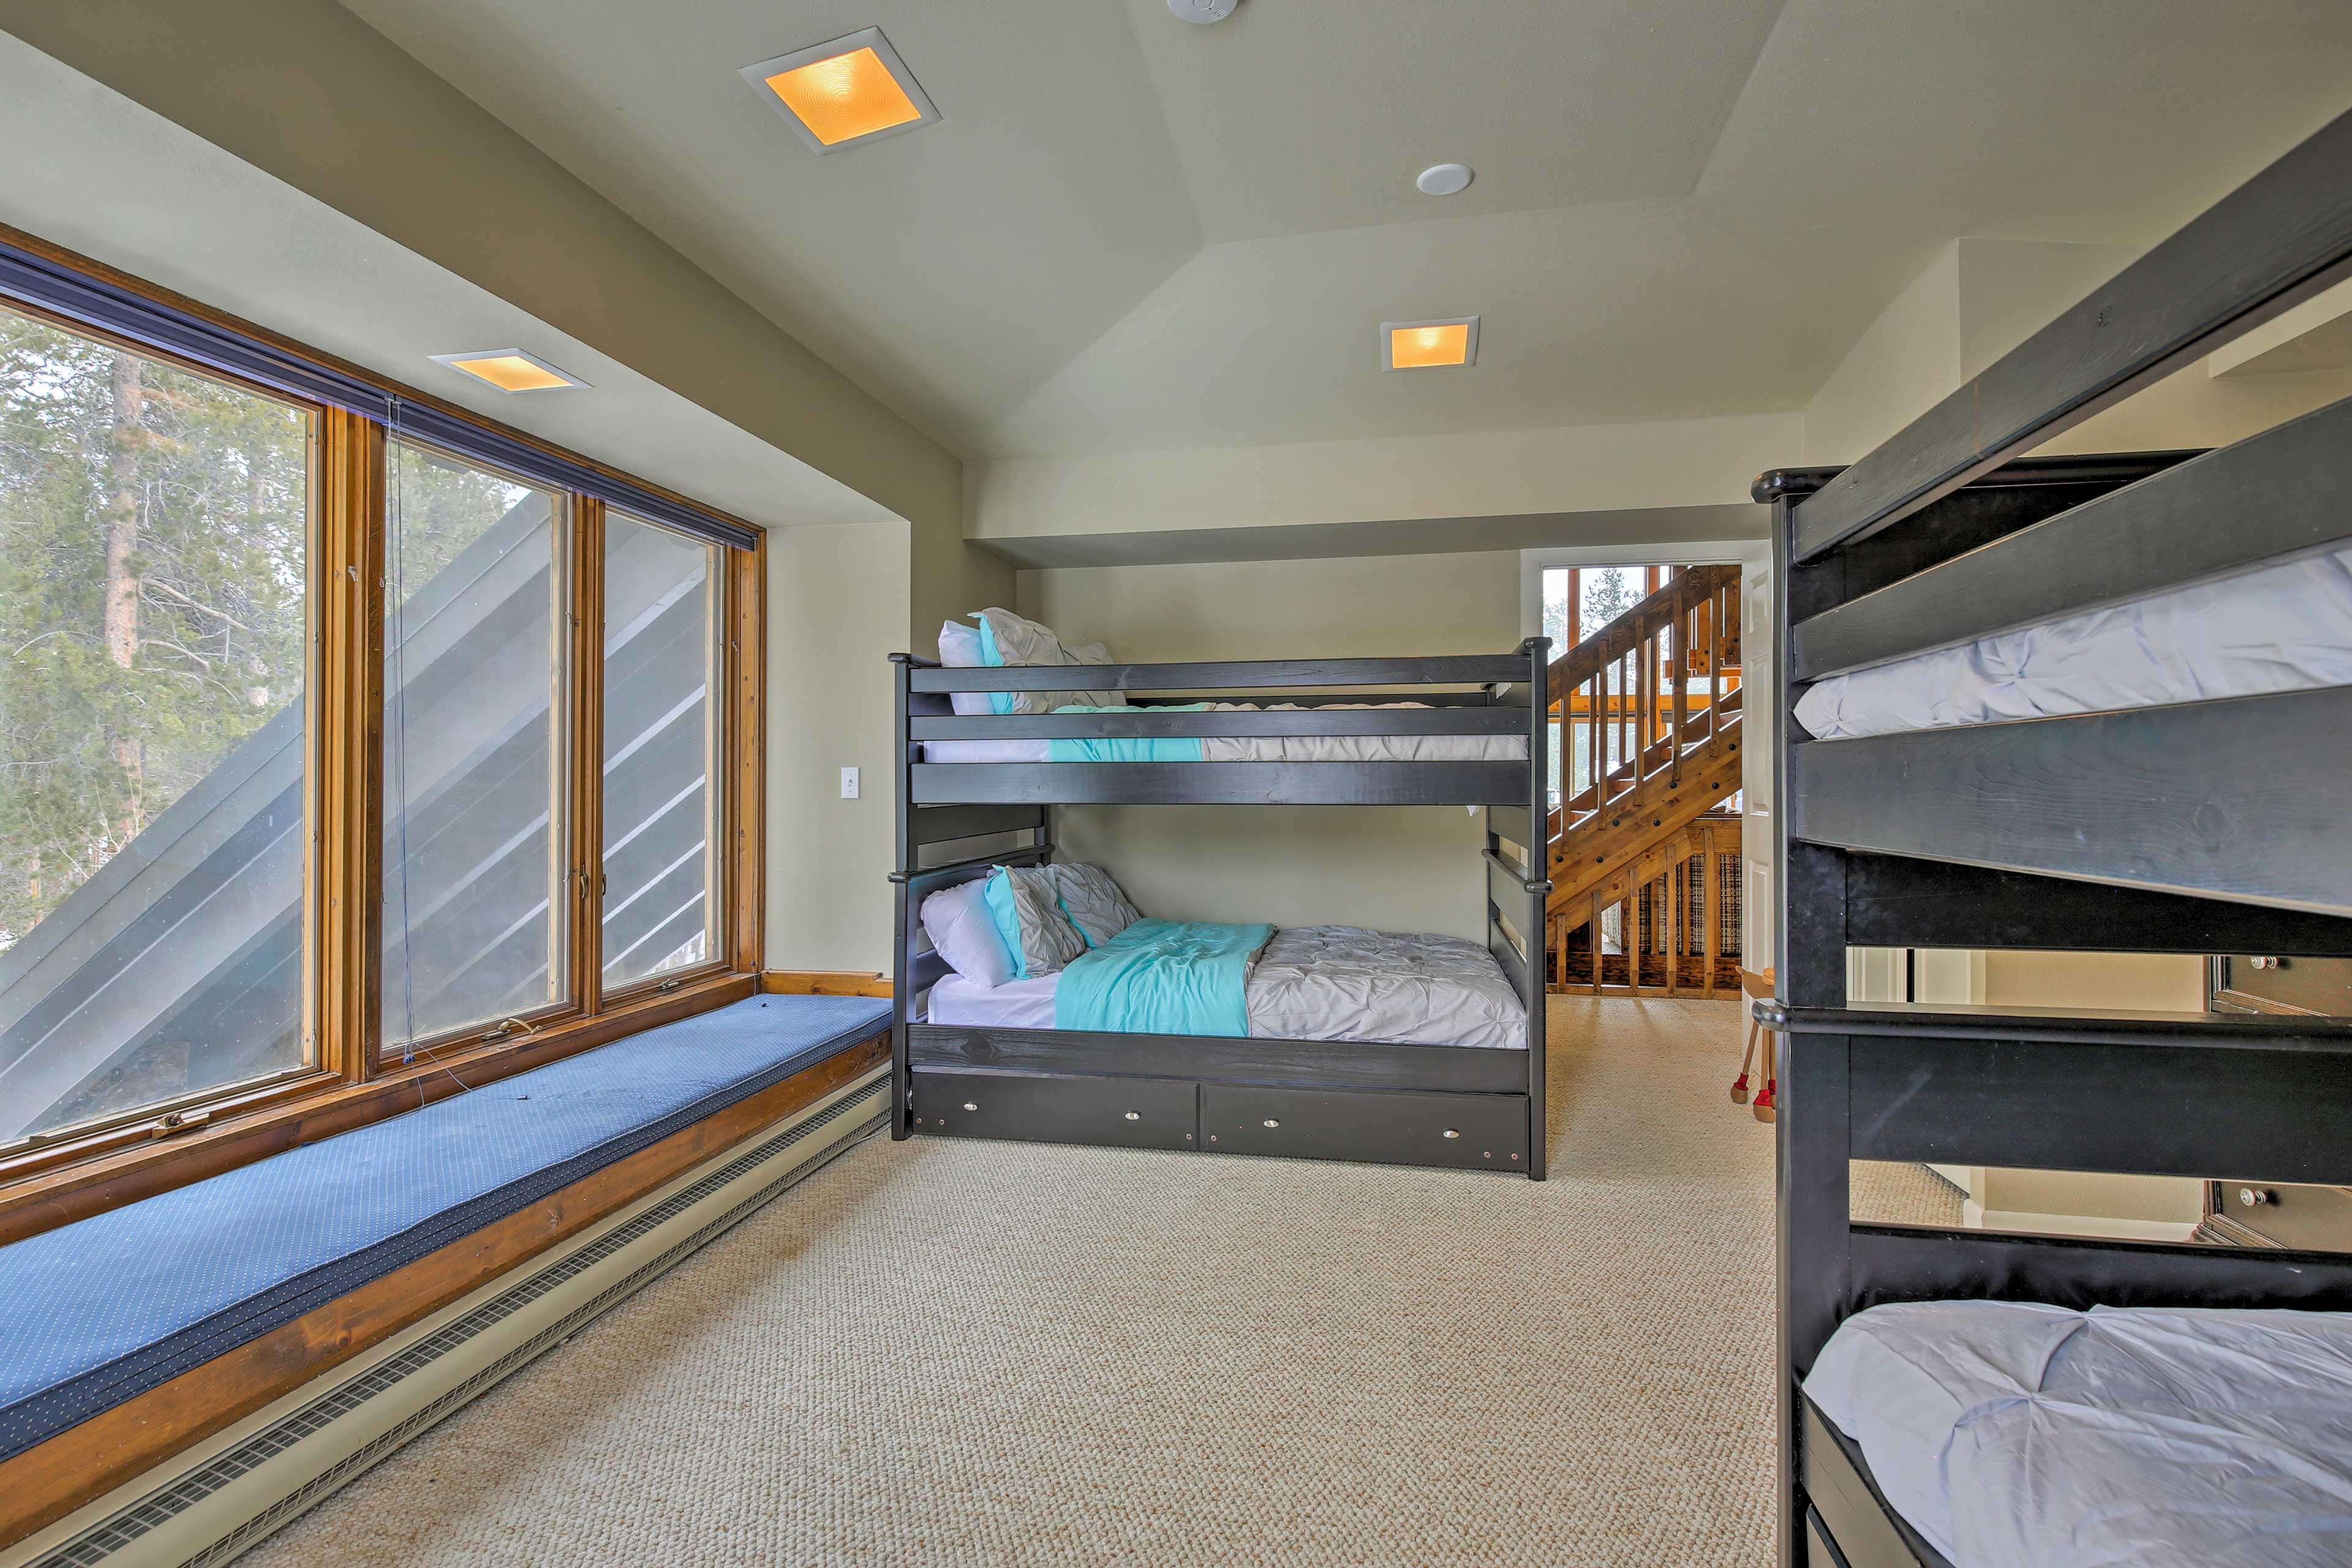 This bedroom features 2 full-over-full bunk beds and 2 twin trundle beds.